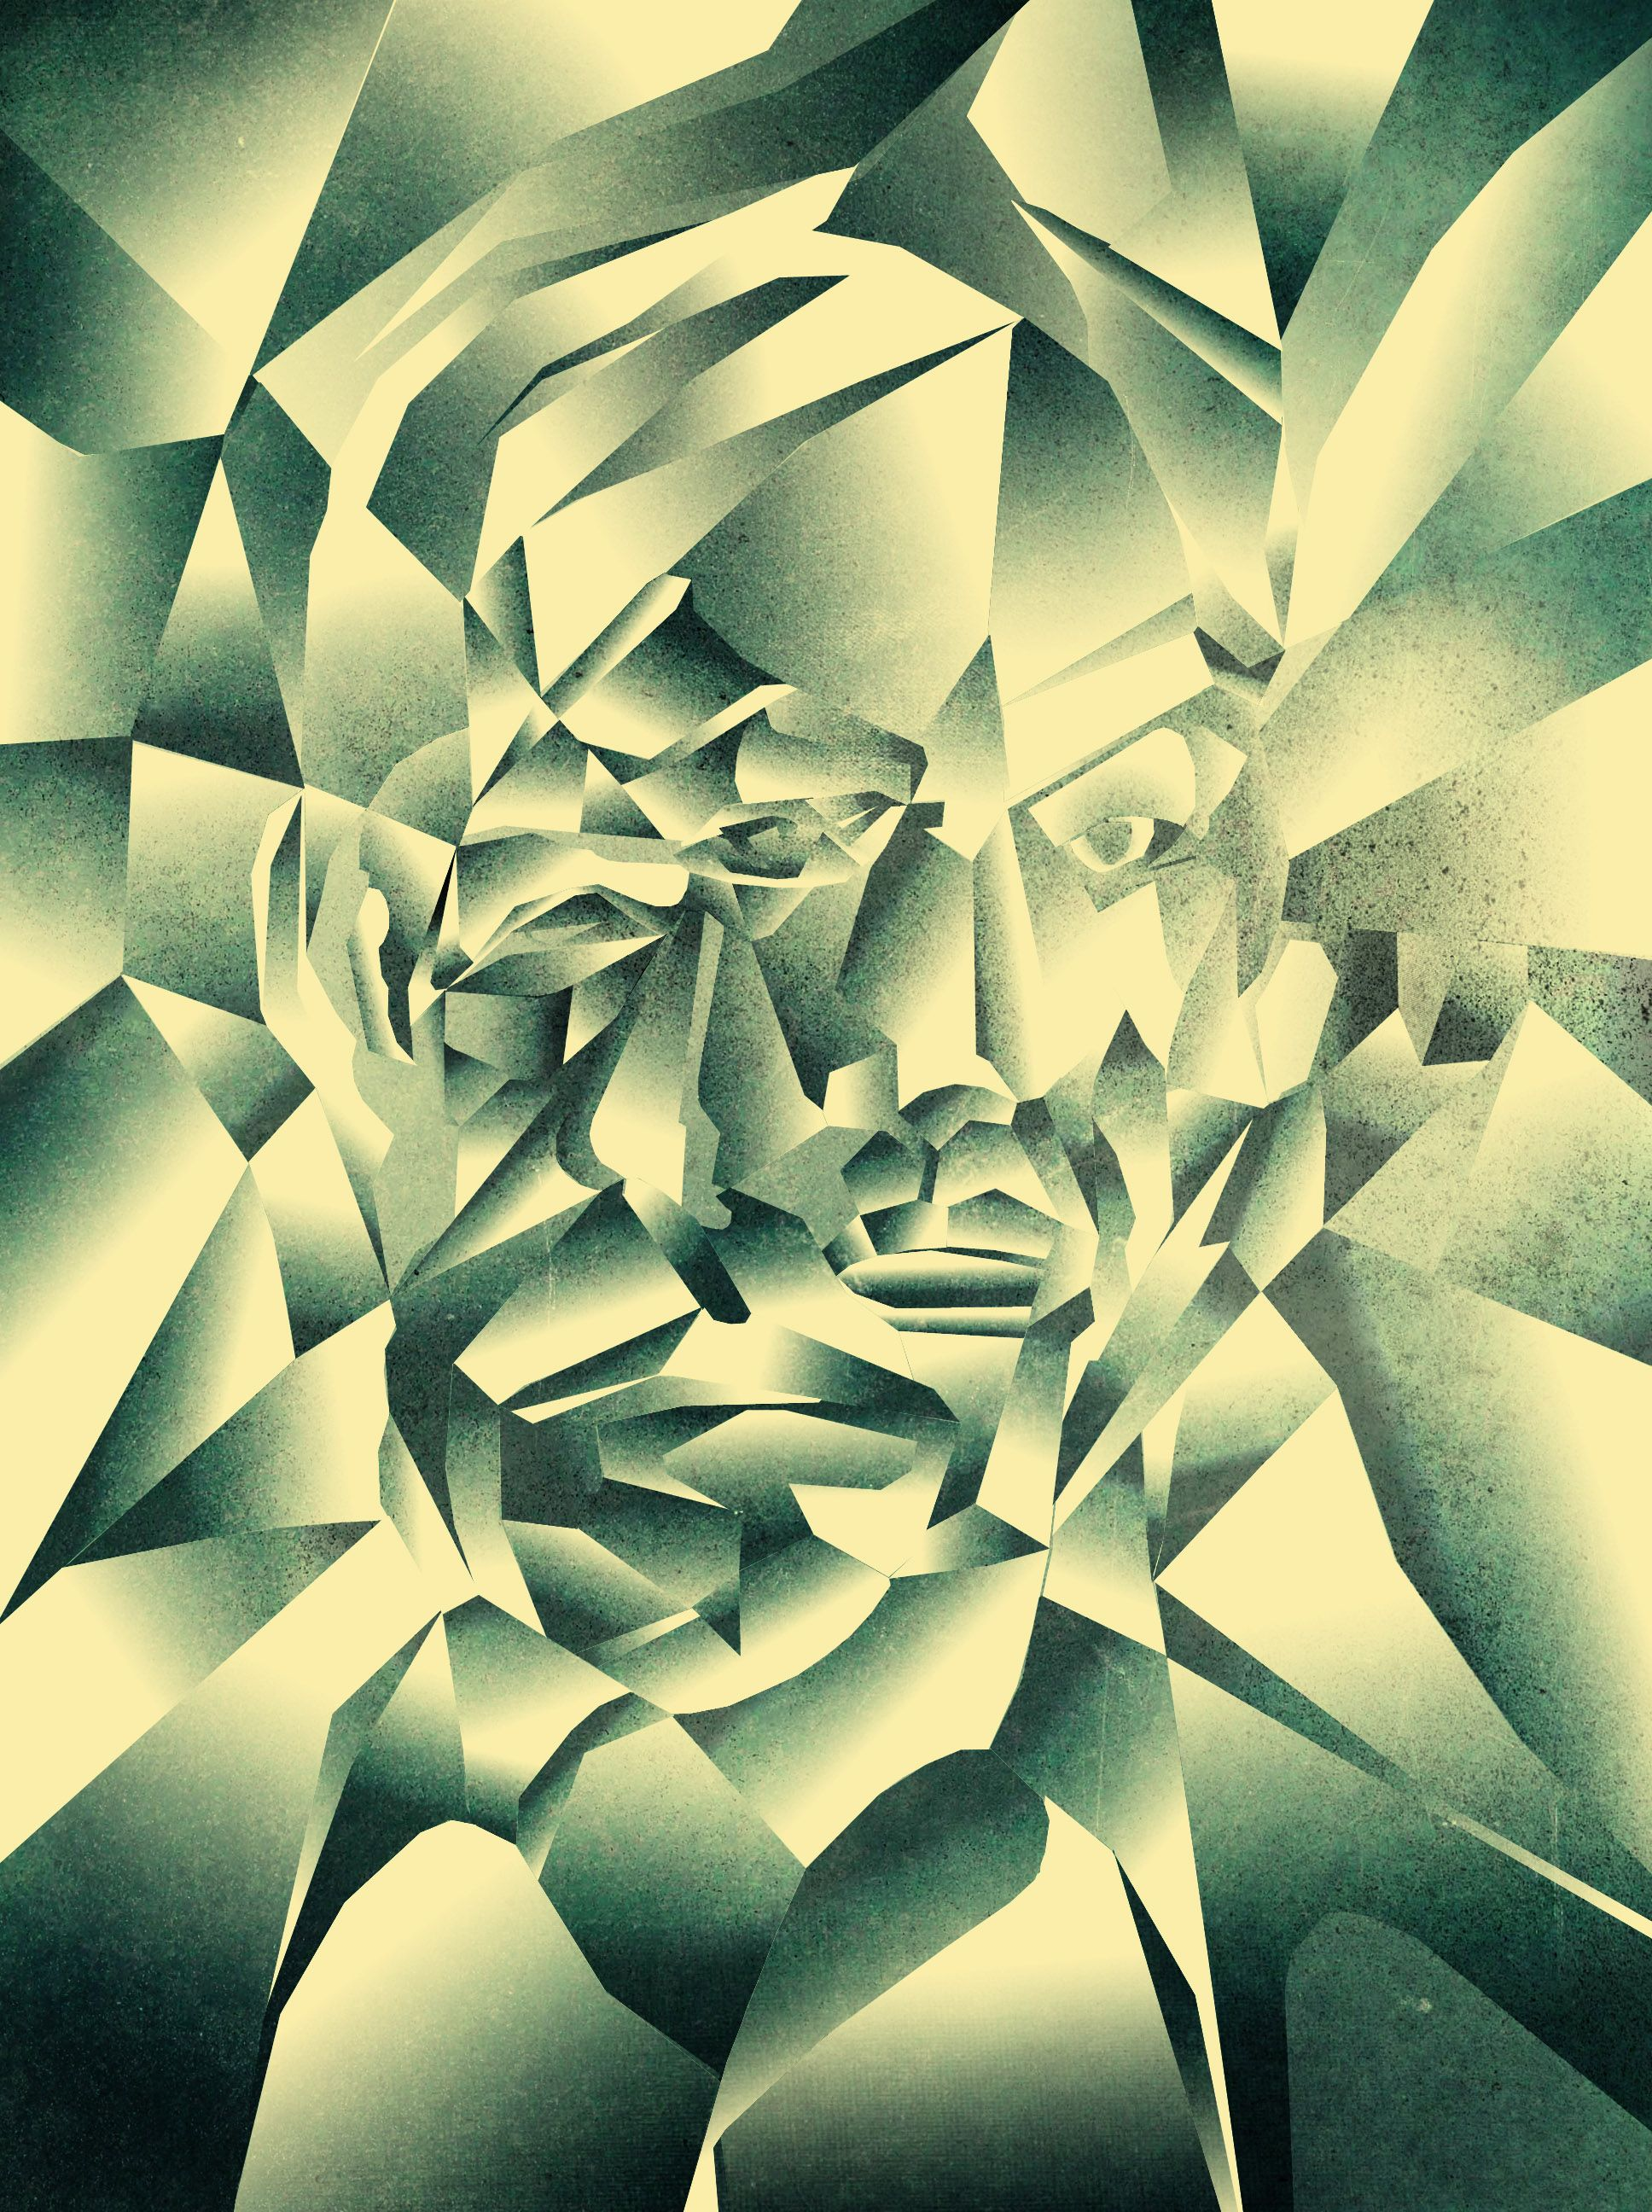 Cubist Portrait Example Created In Photoshop Using The